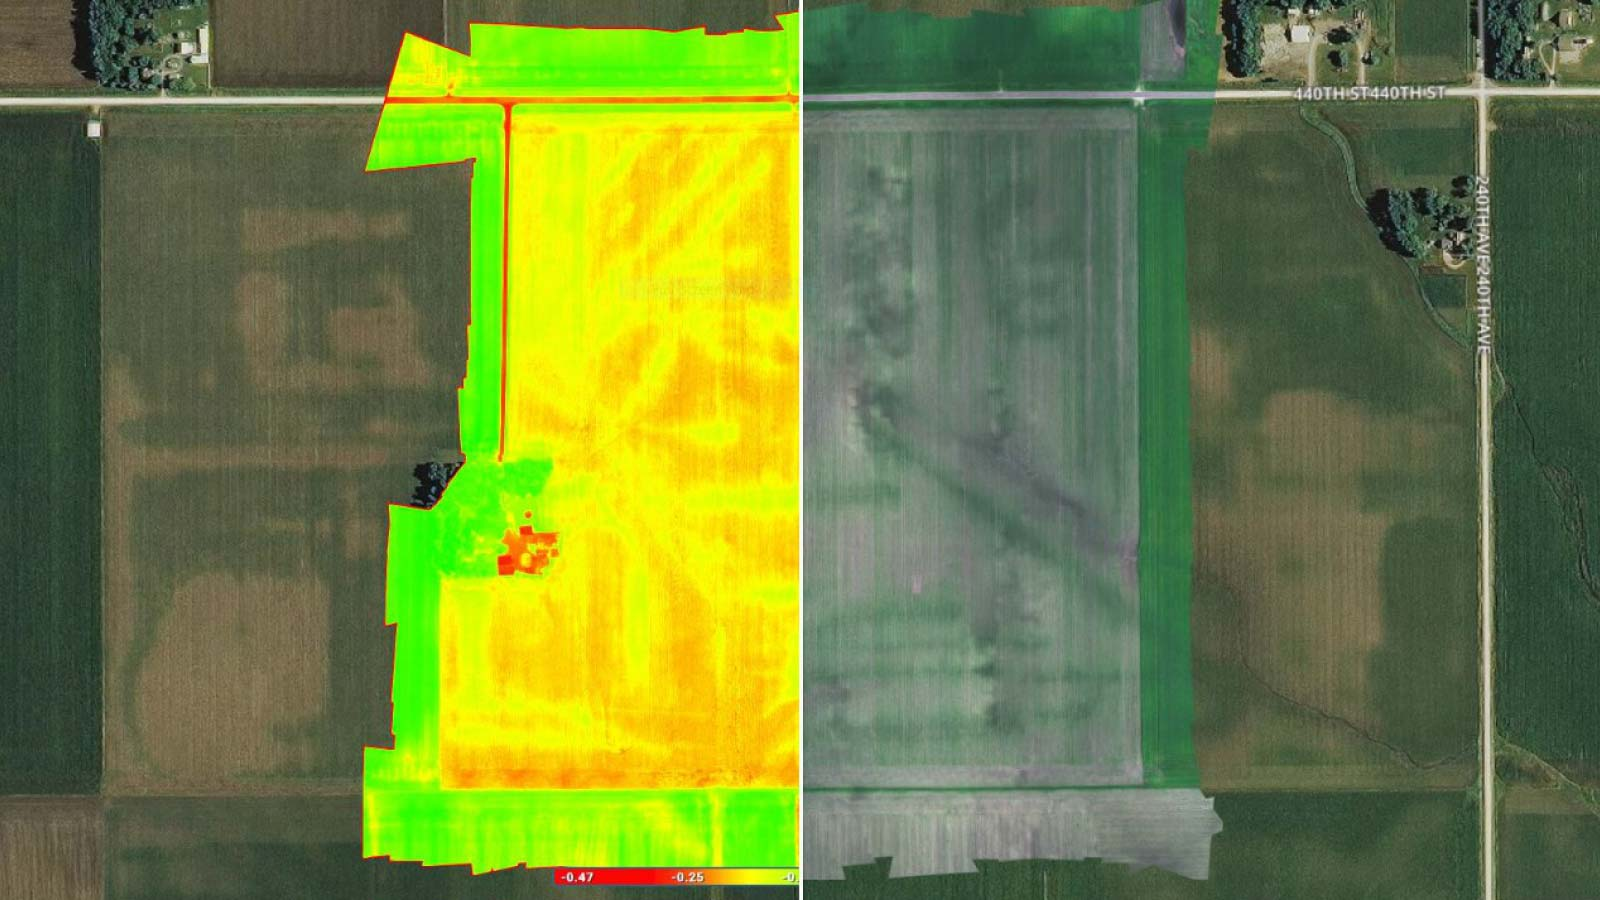 Webinar for agriculture mapping with Pix4Dfields and MicaSense RedEdge